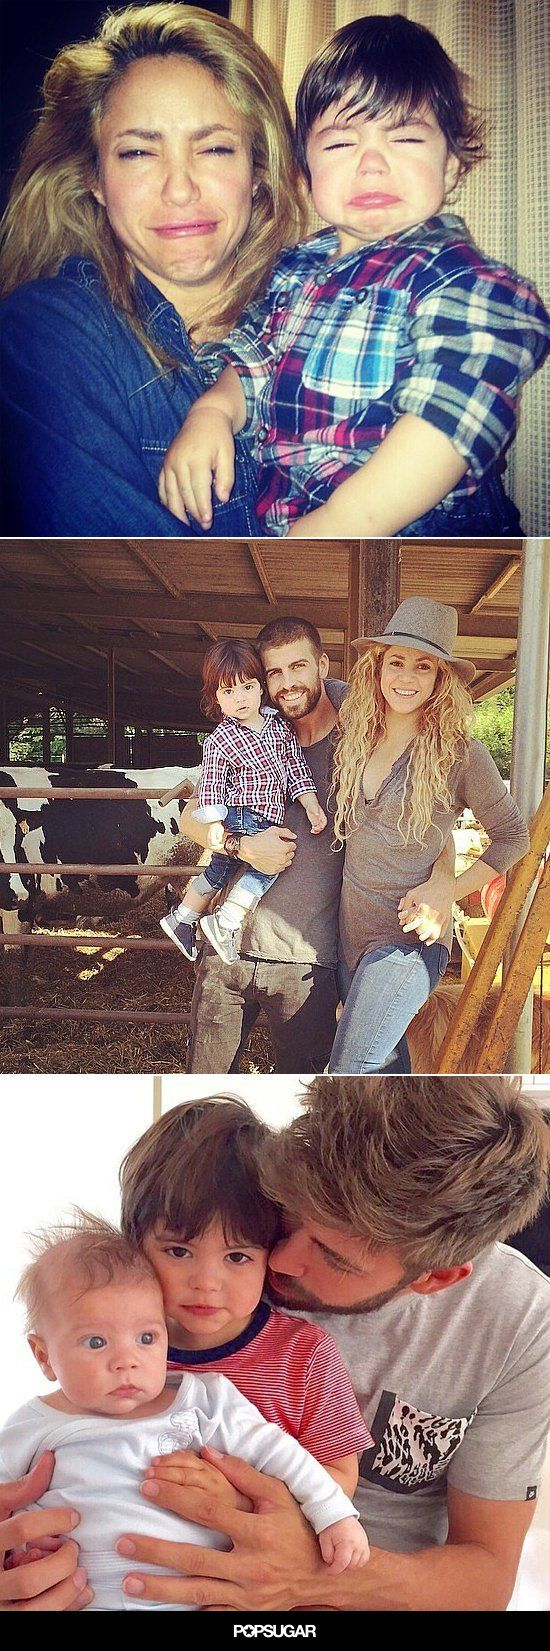 22 Times Shakira and Gerard Piqué Gave Us Major Family Goals